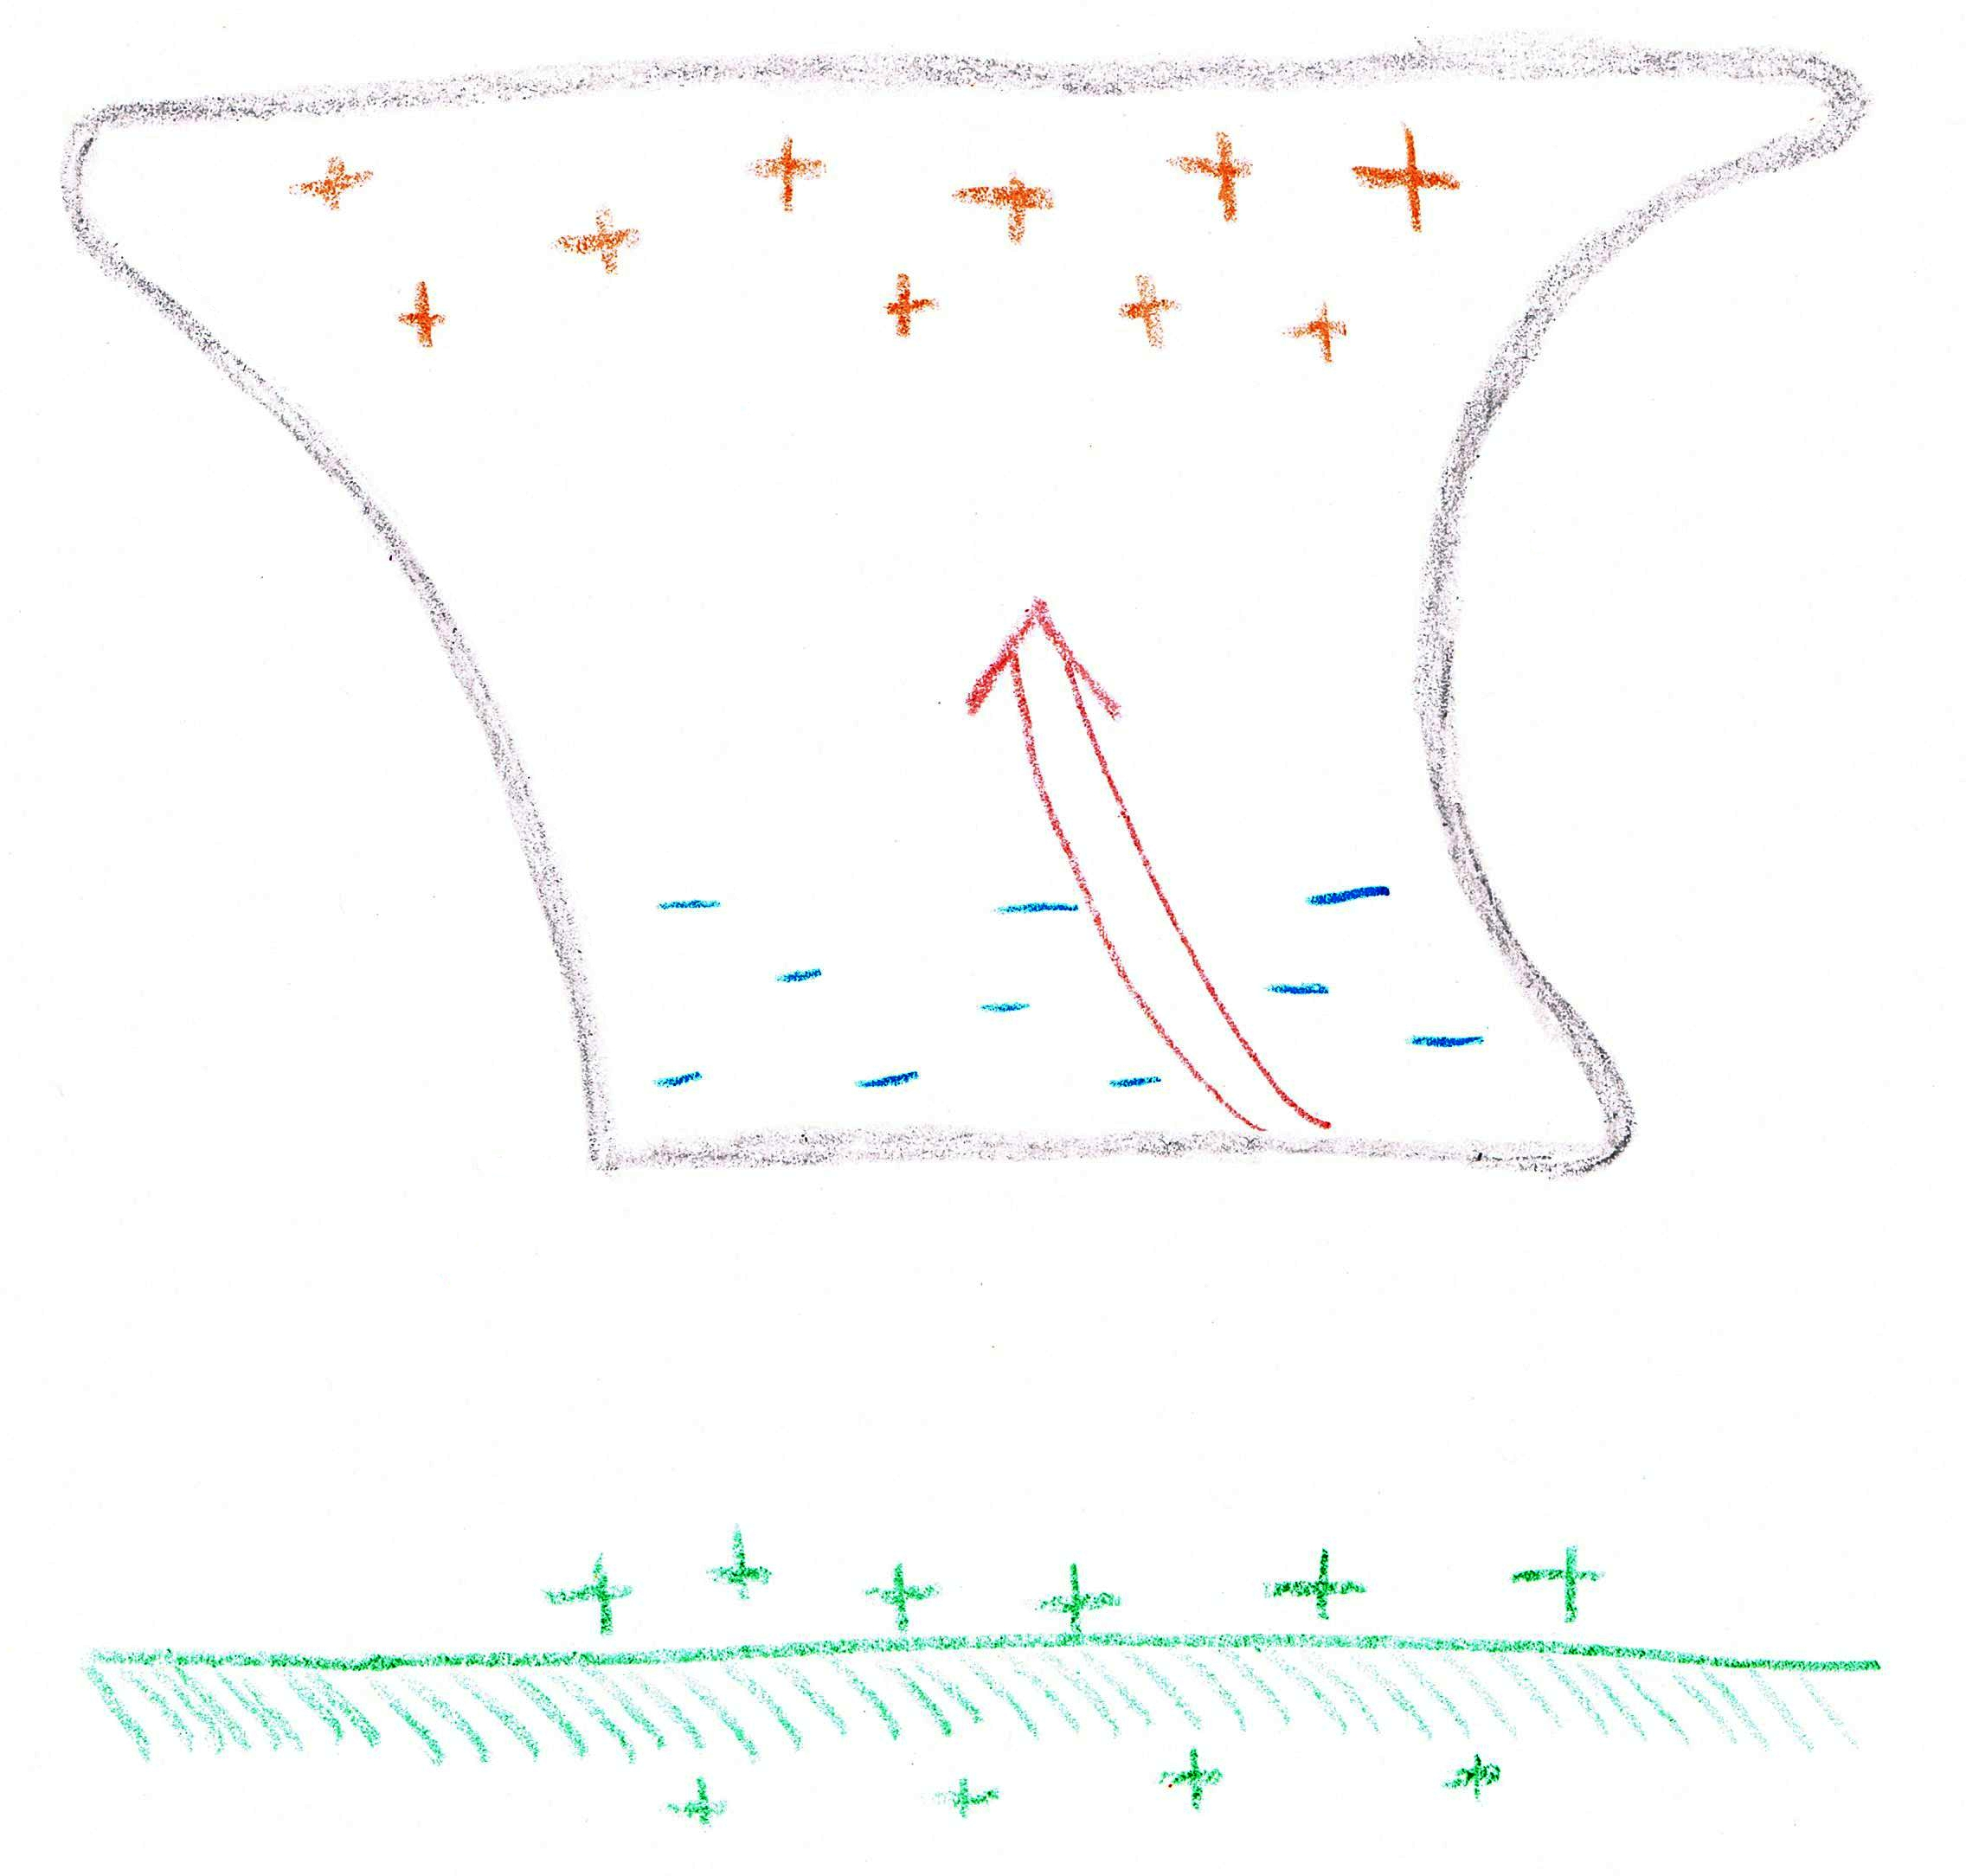 Thundercloud with positive charge at the top and negative charge at the bottom.  The ground below has a positive charge too.